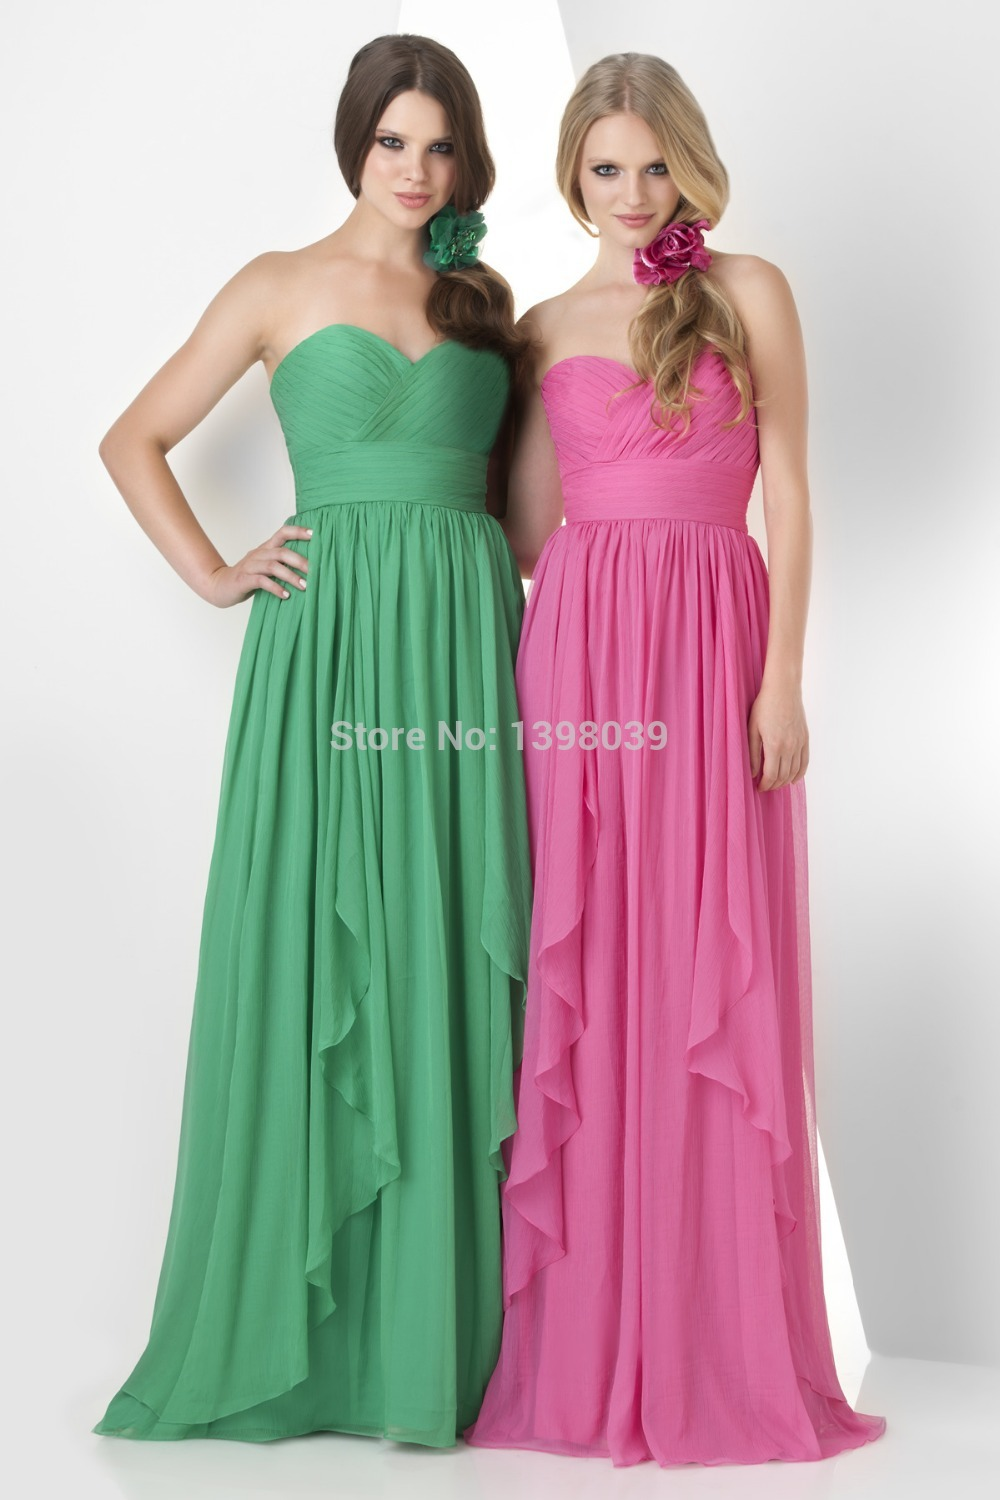 Aliexpress.com : Buy Simple Design A line Sweetheart Green Pink Chiffon Bridesmaid Dresses 2014 Long Elegant Formal Dress Gowns from Reliable dresses belt suppliers on Silence Angle